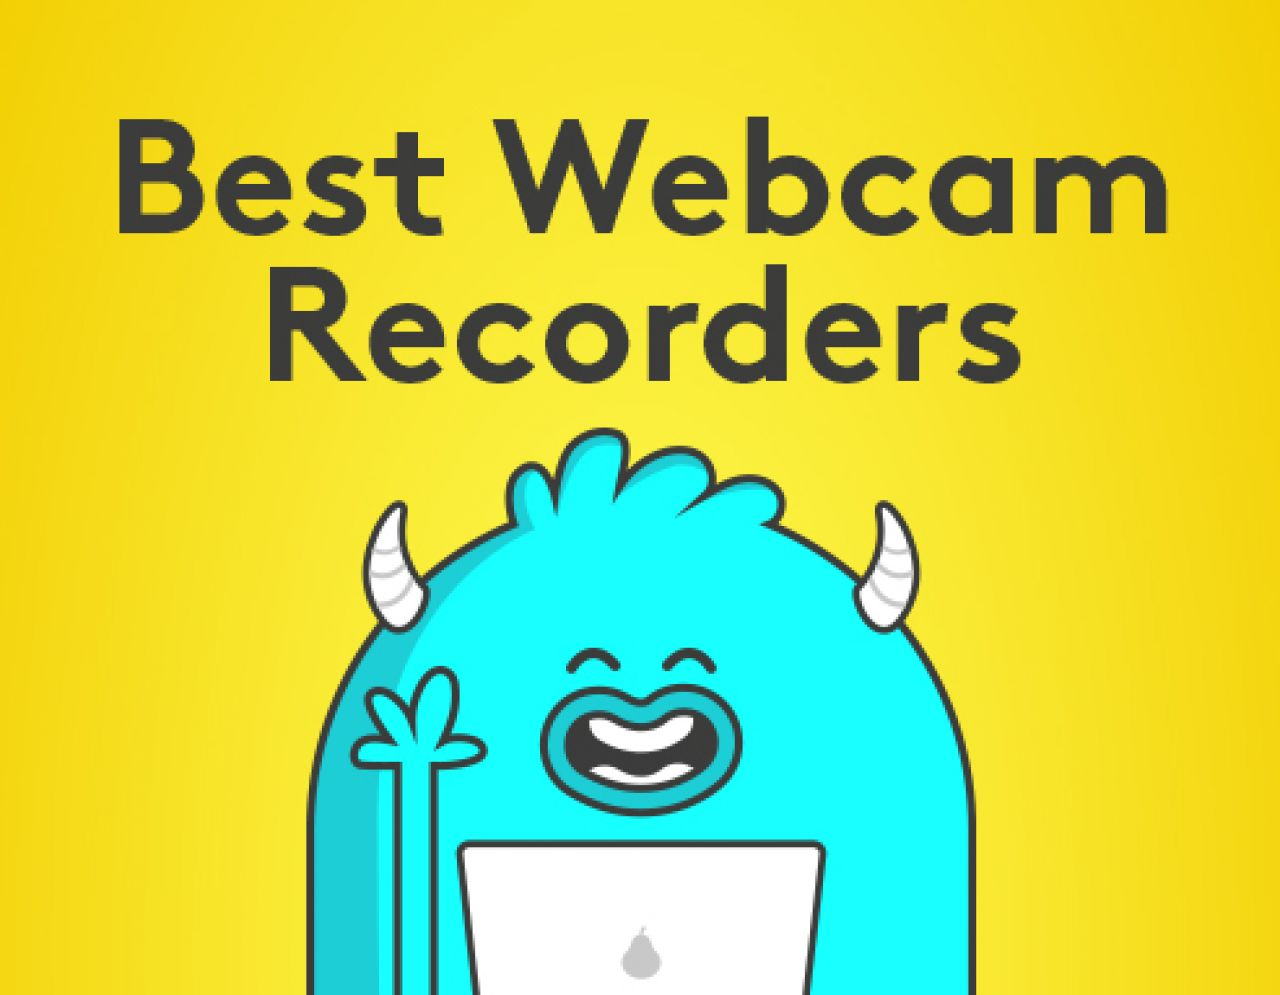 Best Webcam Recorders: How To Film Yourself Using Only A